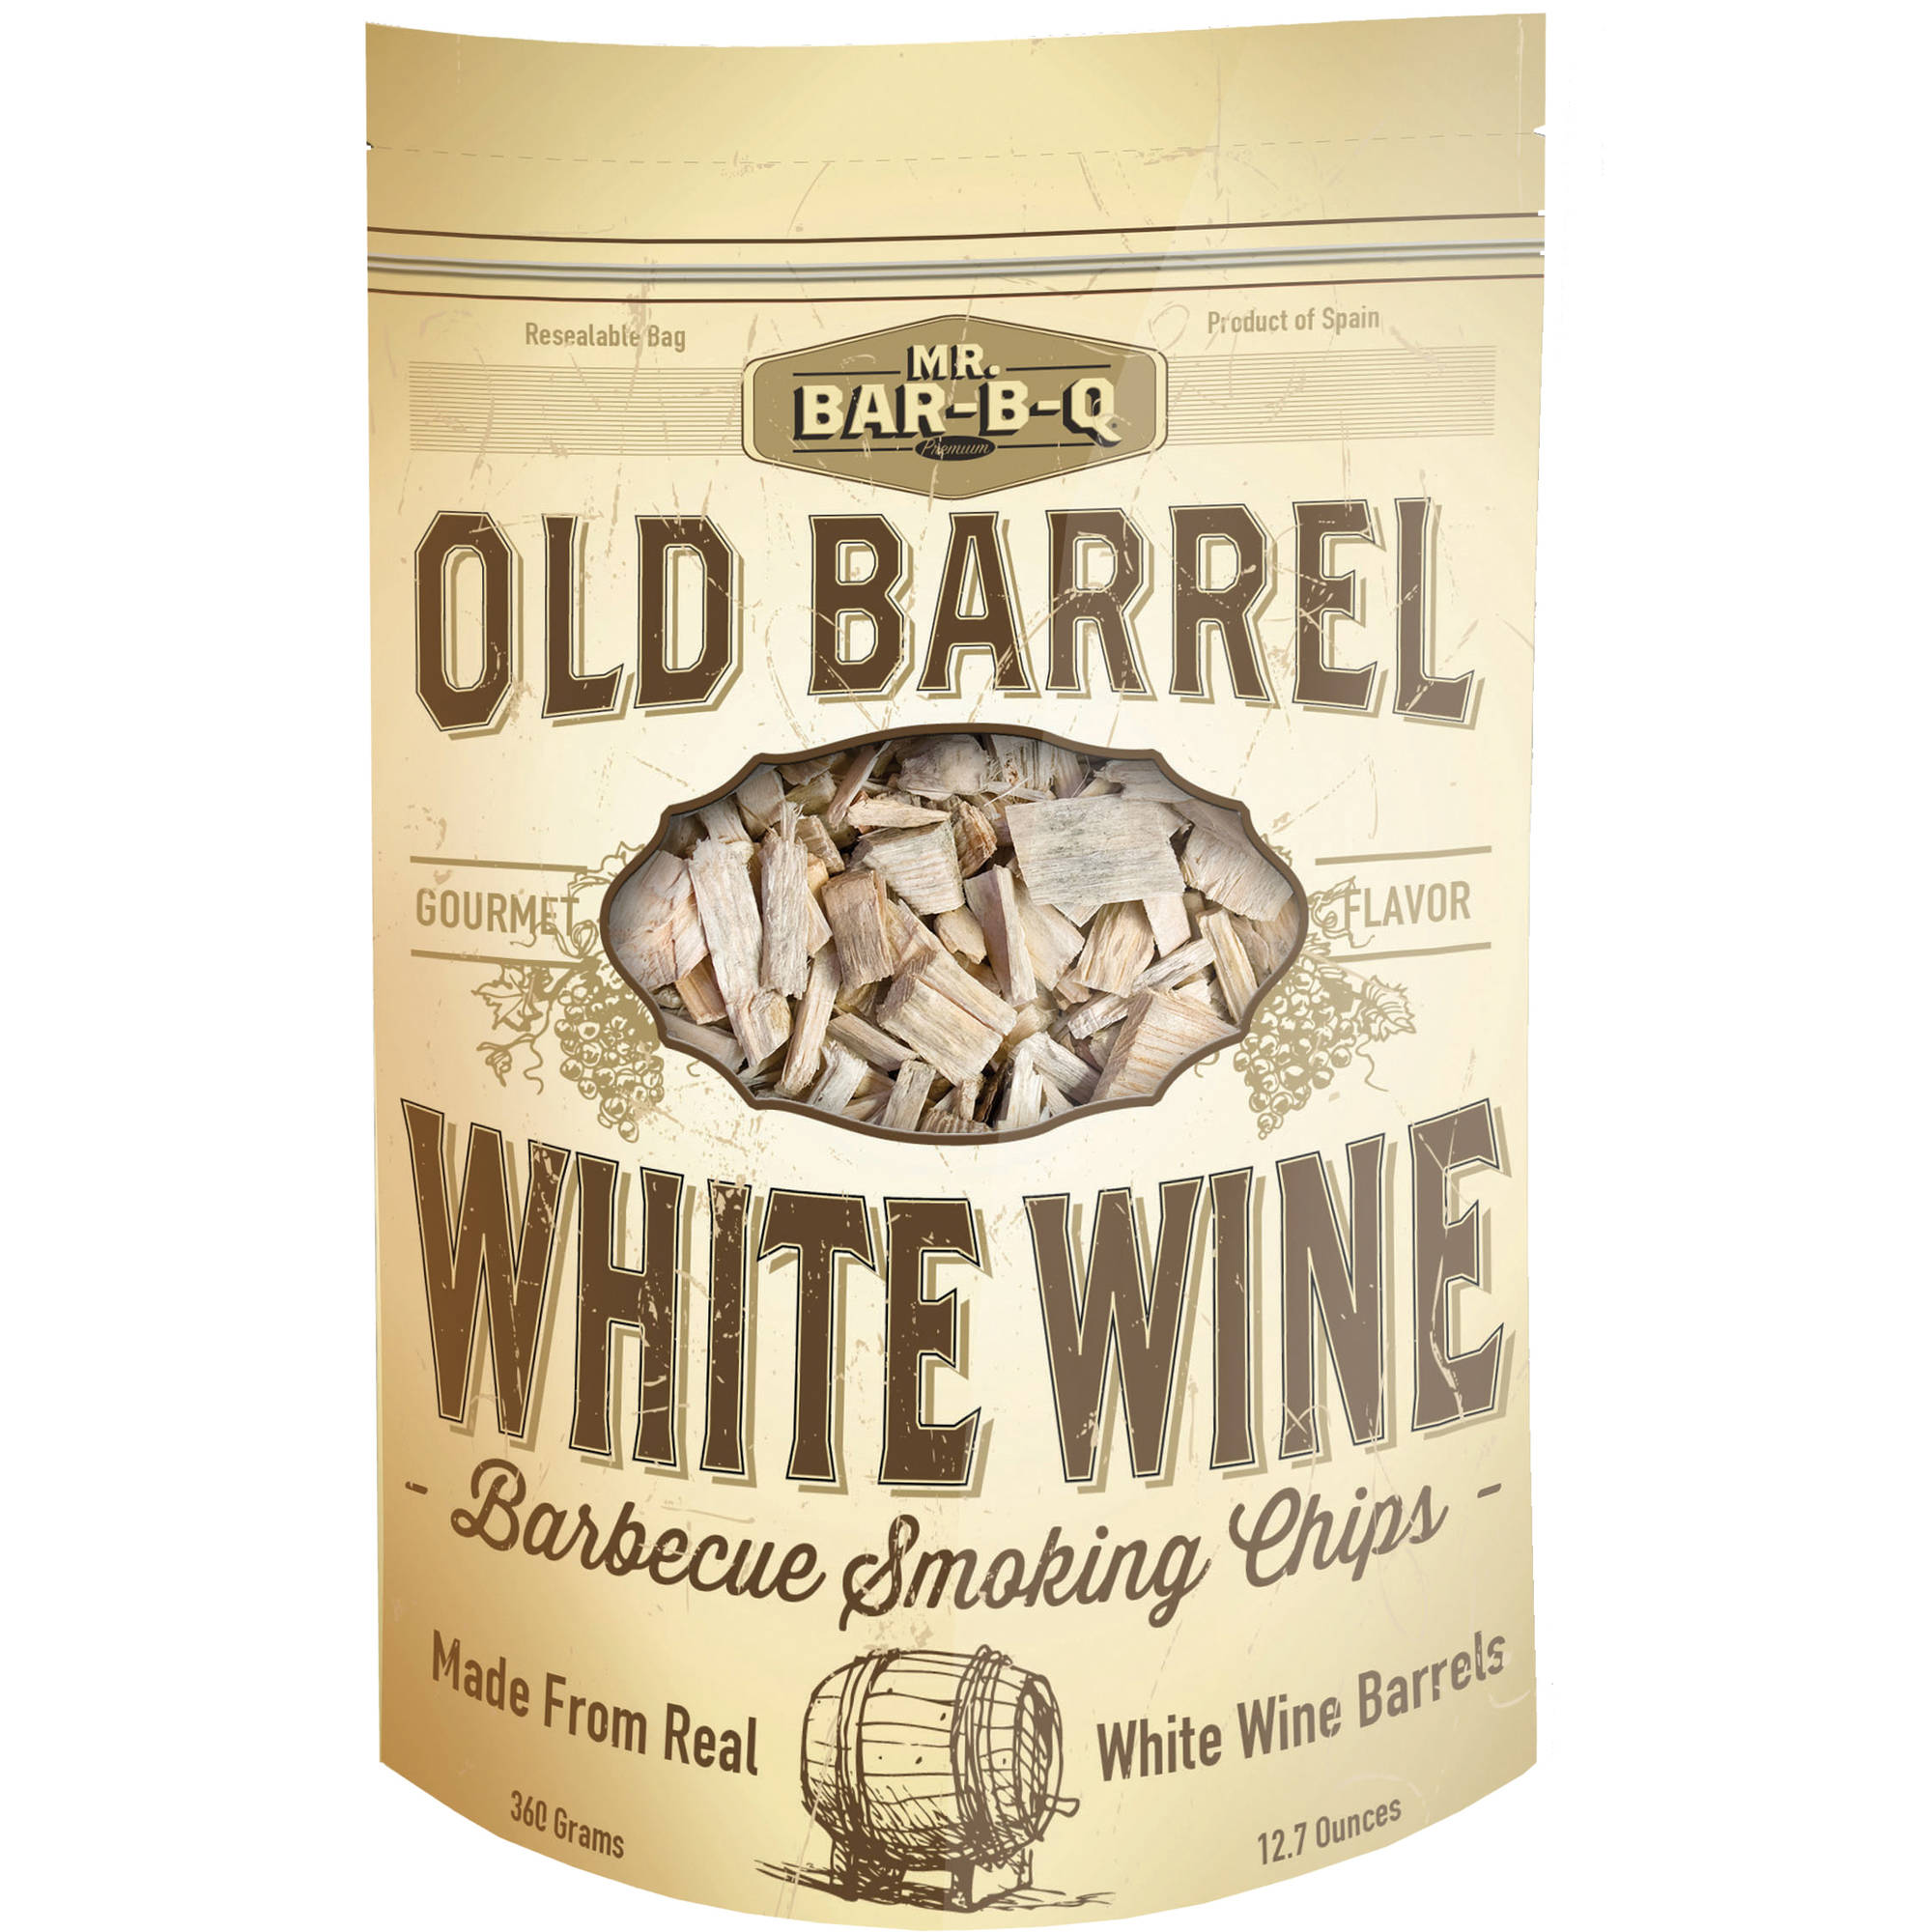 Mr. Bar-B-Q Old Barrel White Wine Barbecue Smoking Chips